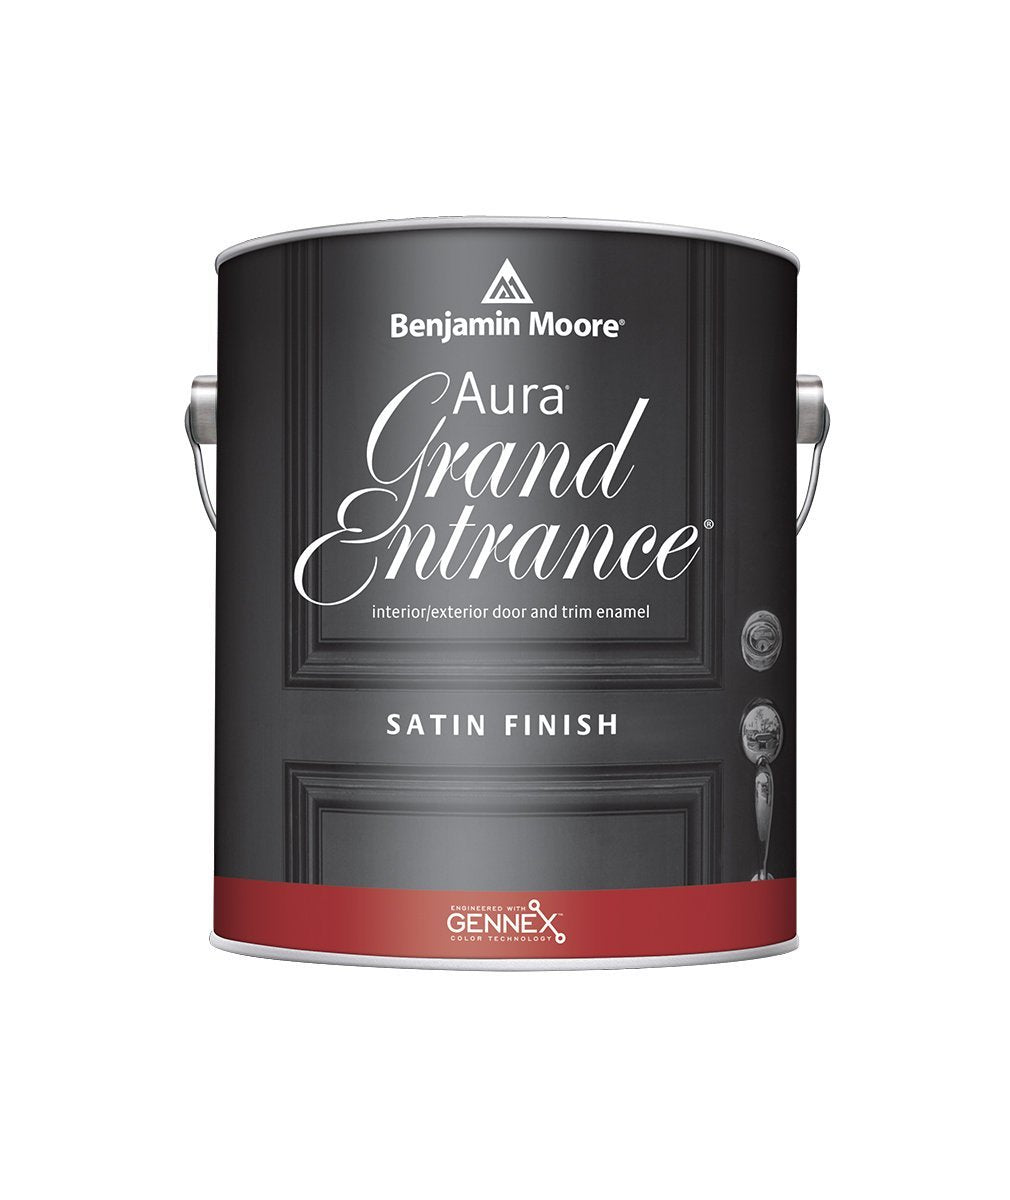 Benjamin Moore Aura Grand Entrance Satin , available at Johnson Paint & Maine Paint in MA, NH & ME.